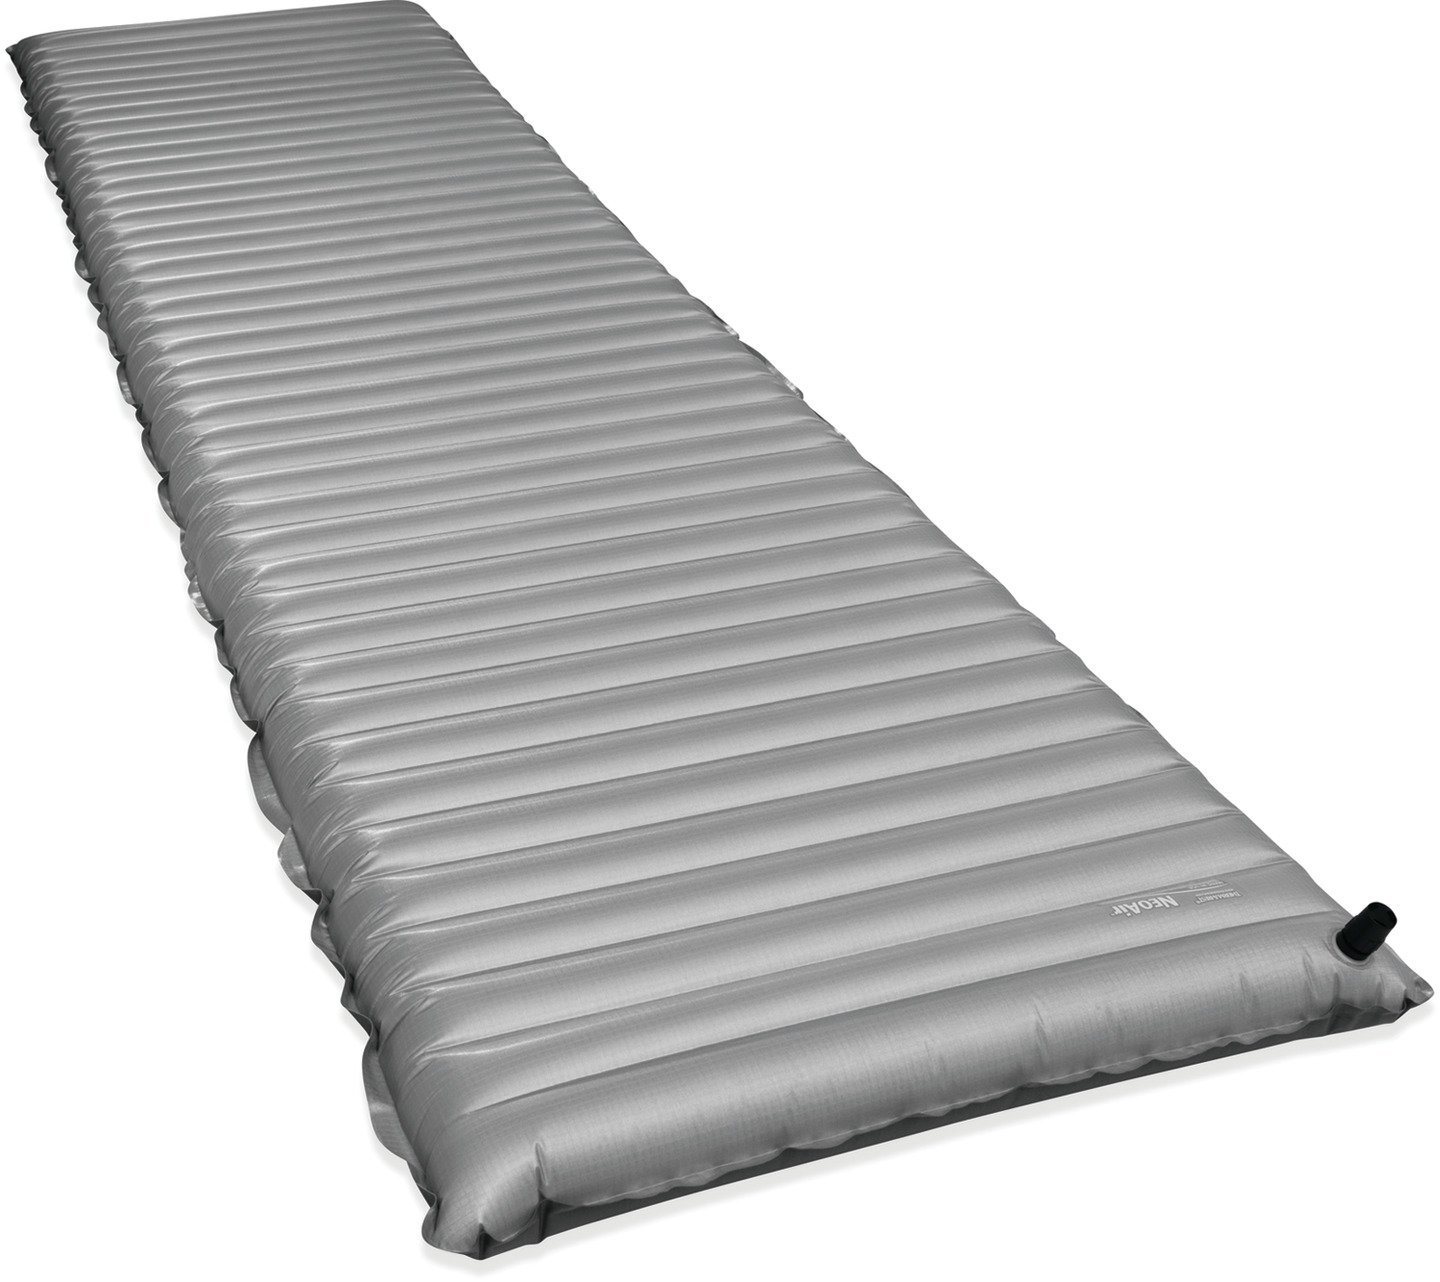 therm-a-rest, sleeping pad, cmping, camping pad, backpacking